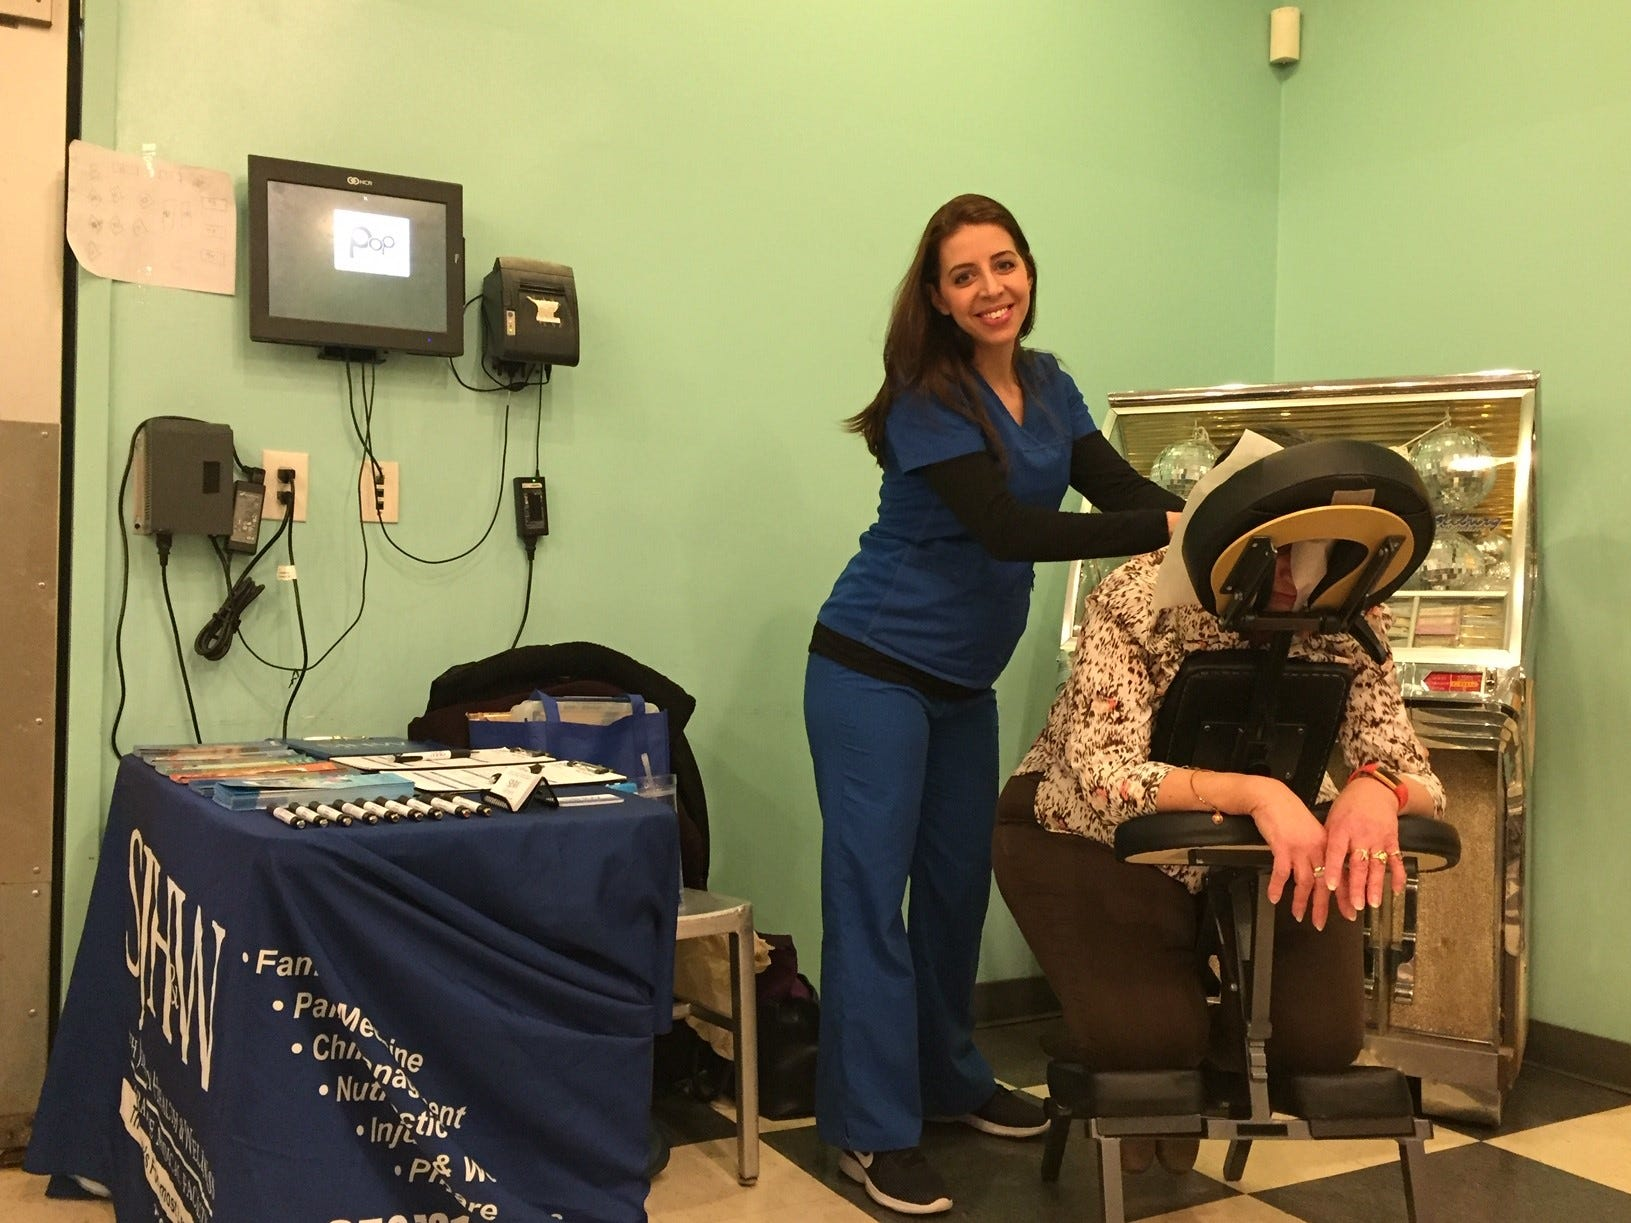 Guests were treated to a massage chair experience at the Galentine's Celebration, courtesy of South Jersey Health & Wellness.